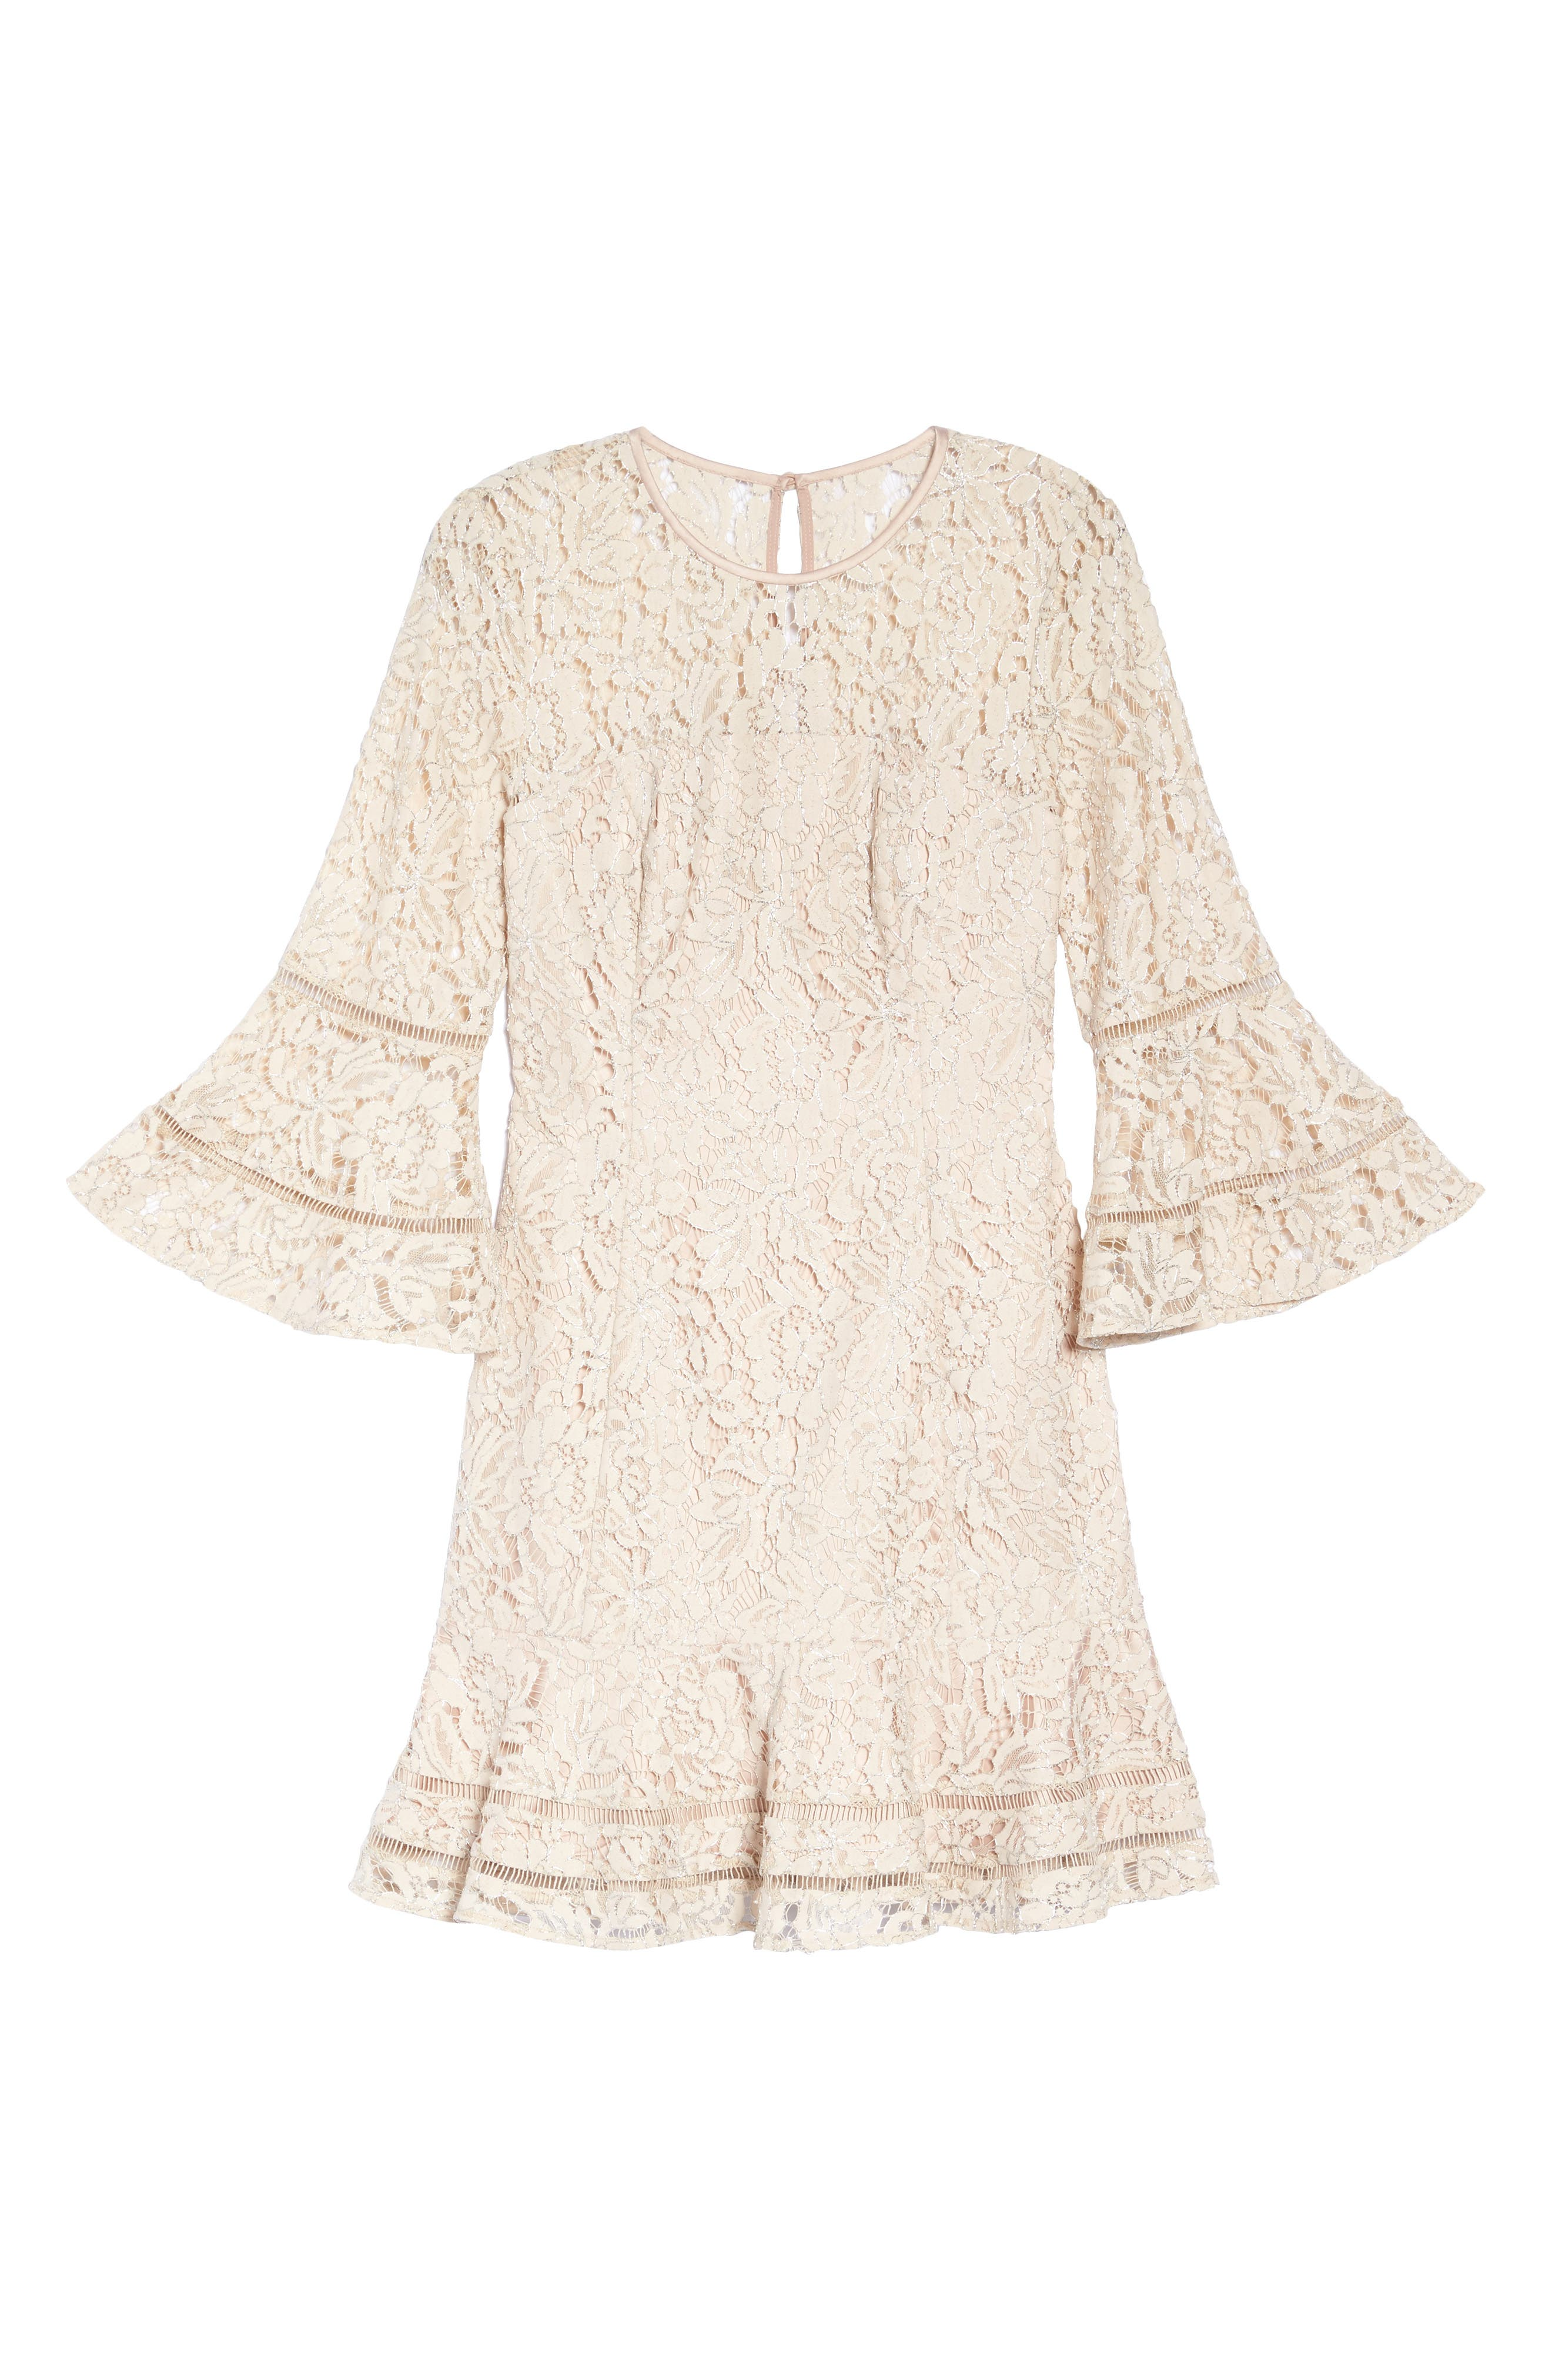 Lace Bell Sleeve Dress,                             Alternate thumbnail 6, color,                             Blush/ Silver